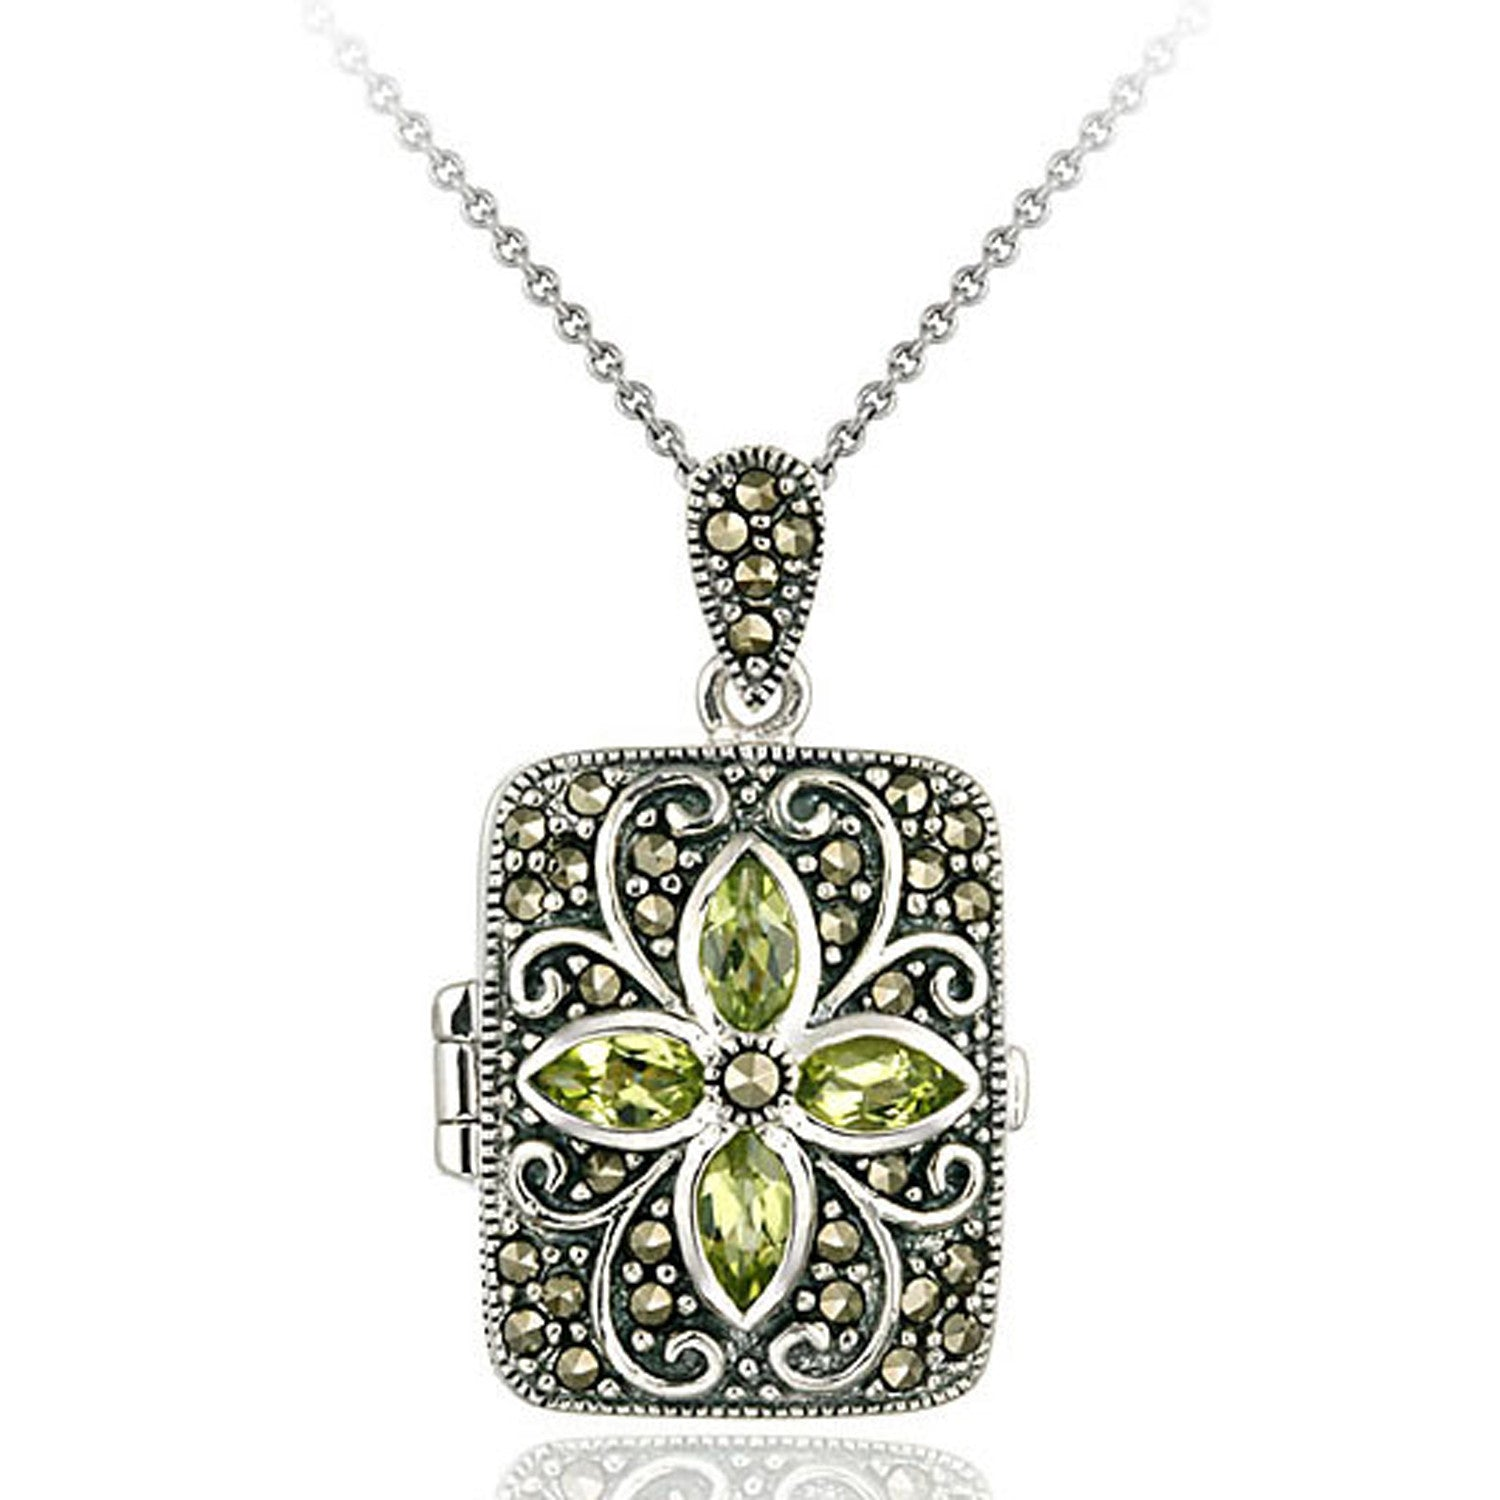 Marcasite & Gemstone Accented Sterling Silver Locket Necklace - Peridot